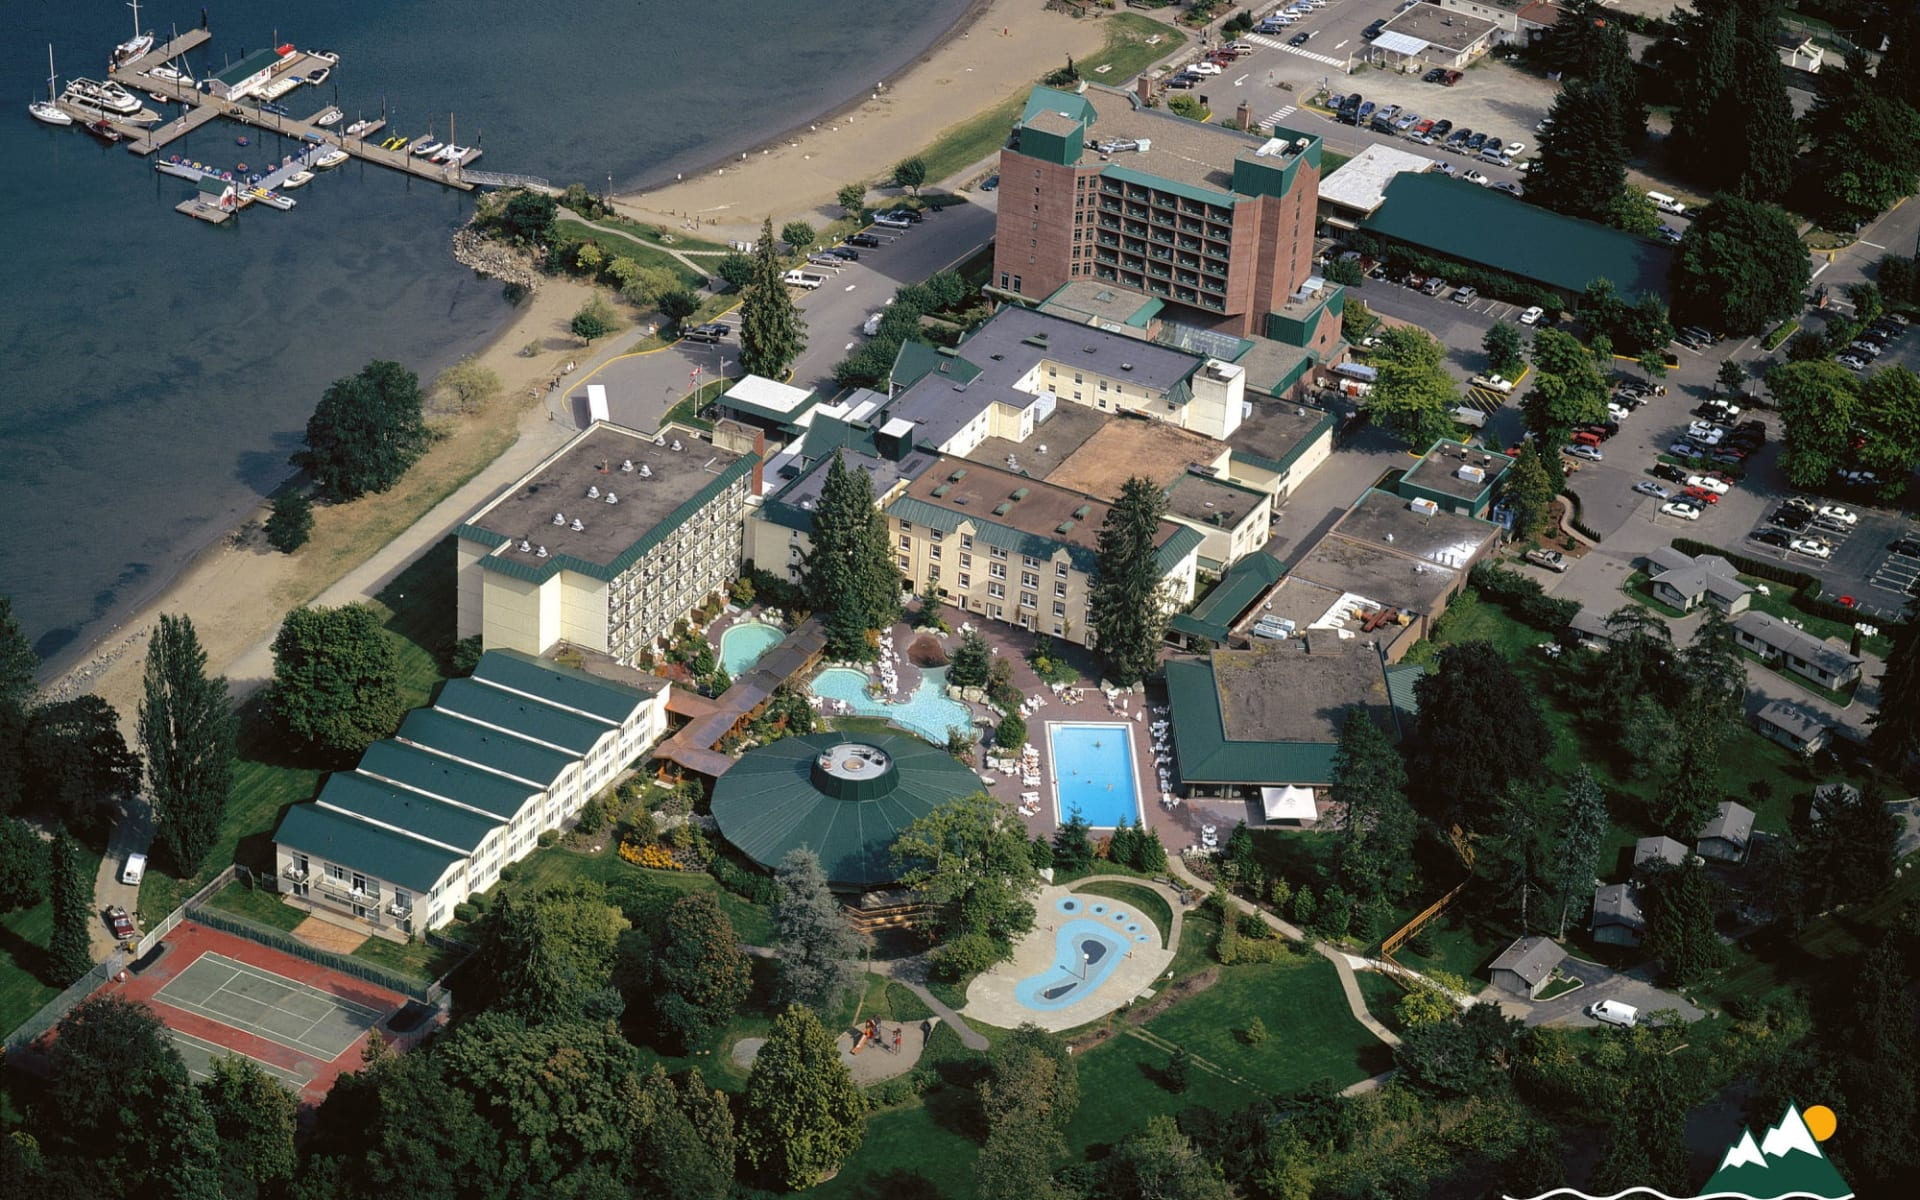 Harrison Hot Springs Resort & Spa:  Harrison Hot Springs Resort & Spa_AerialView